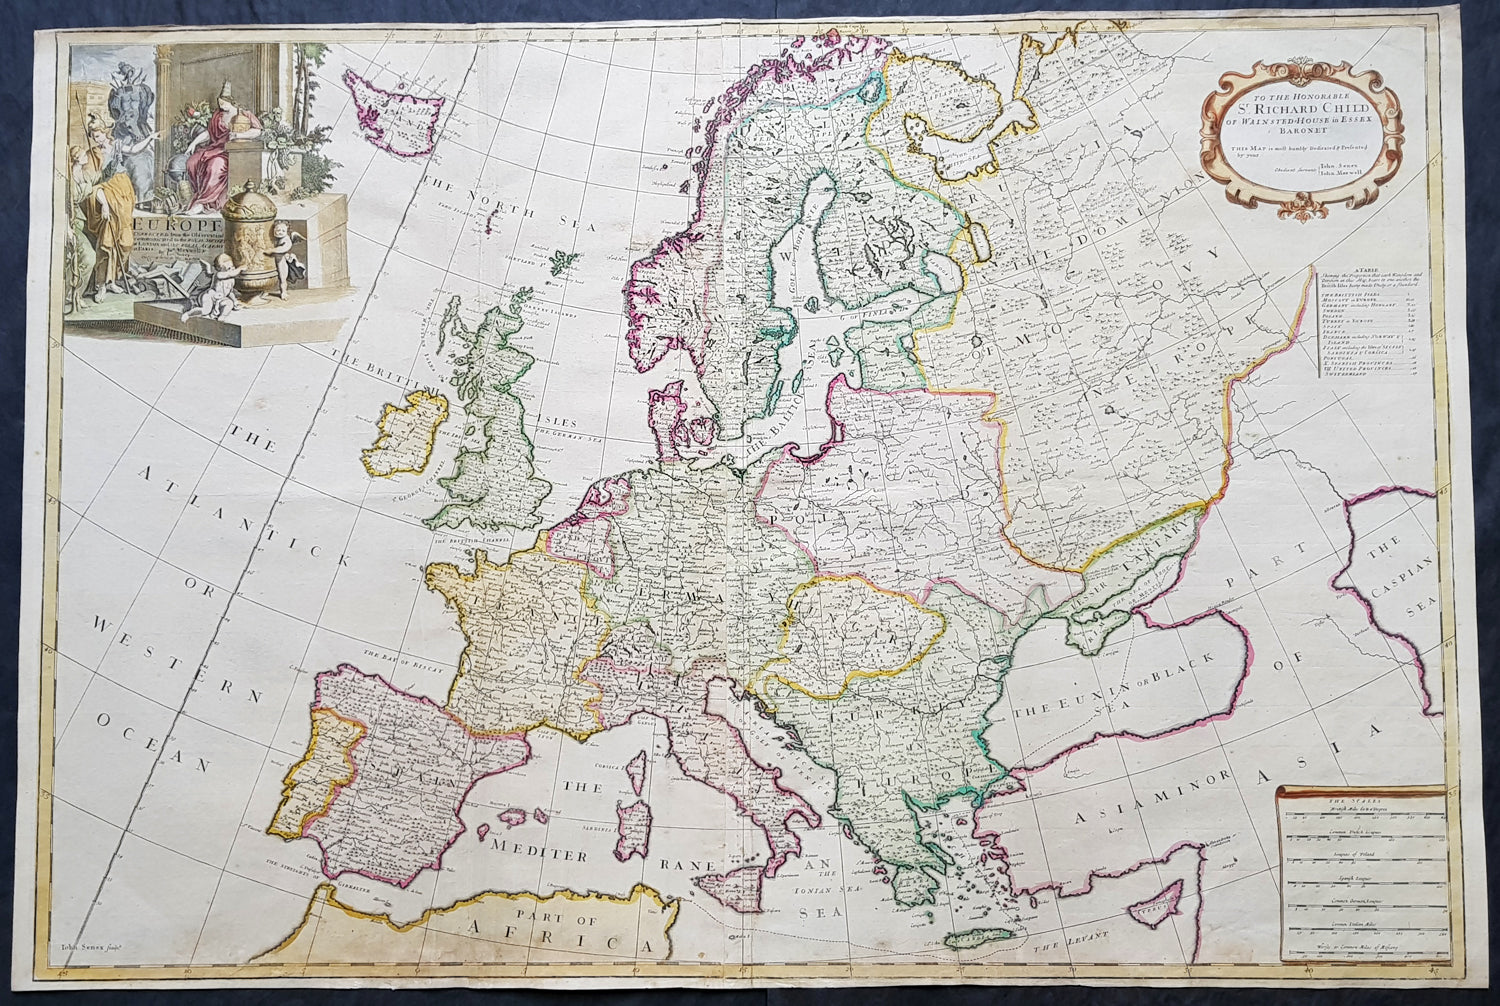 1712 John Senex Large Antique Map Of Europe Iceland Poland